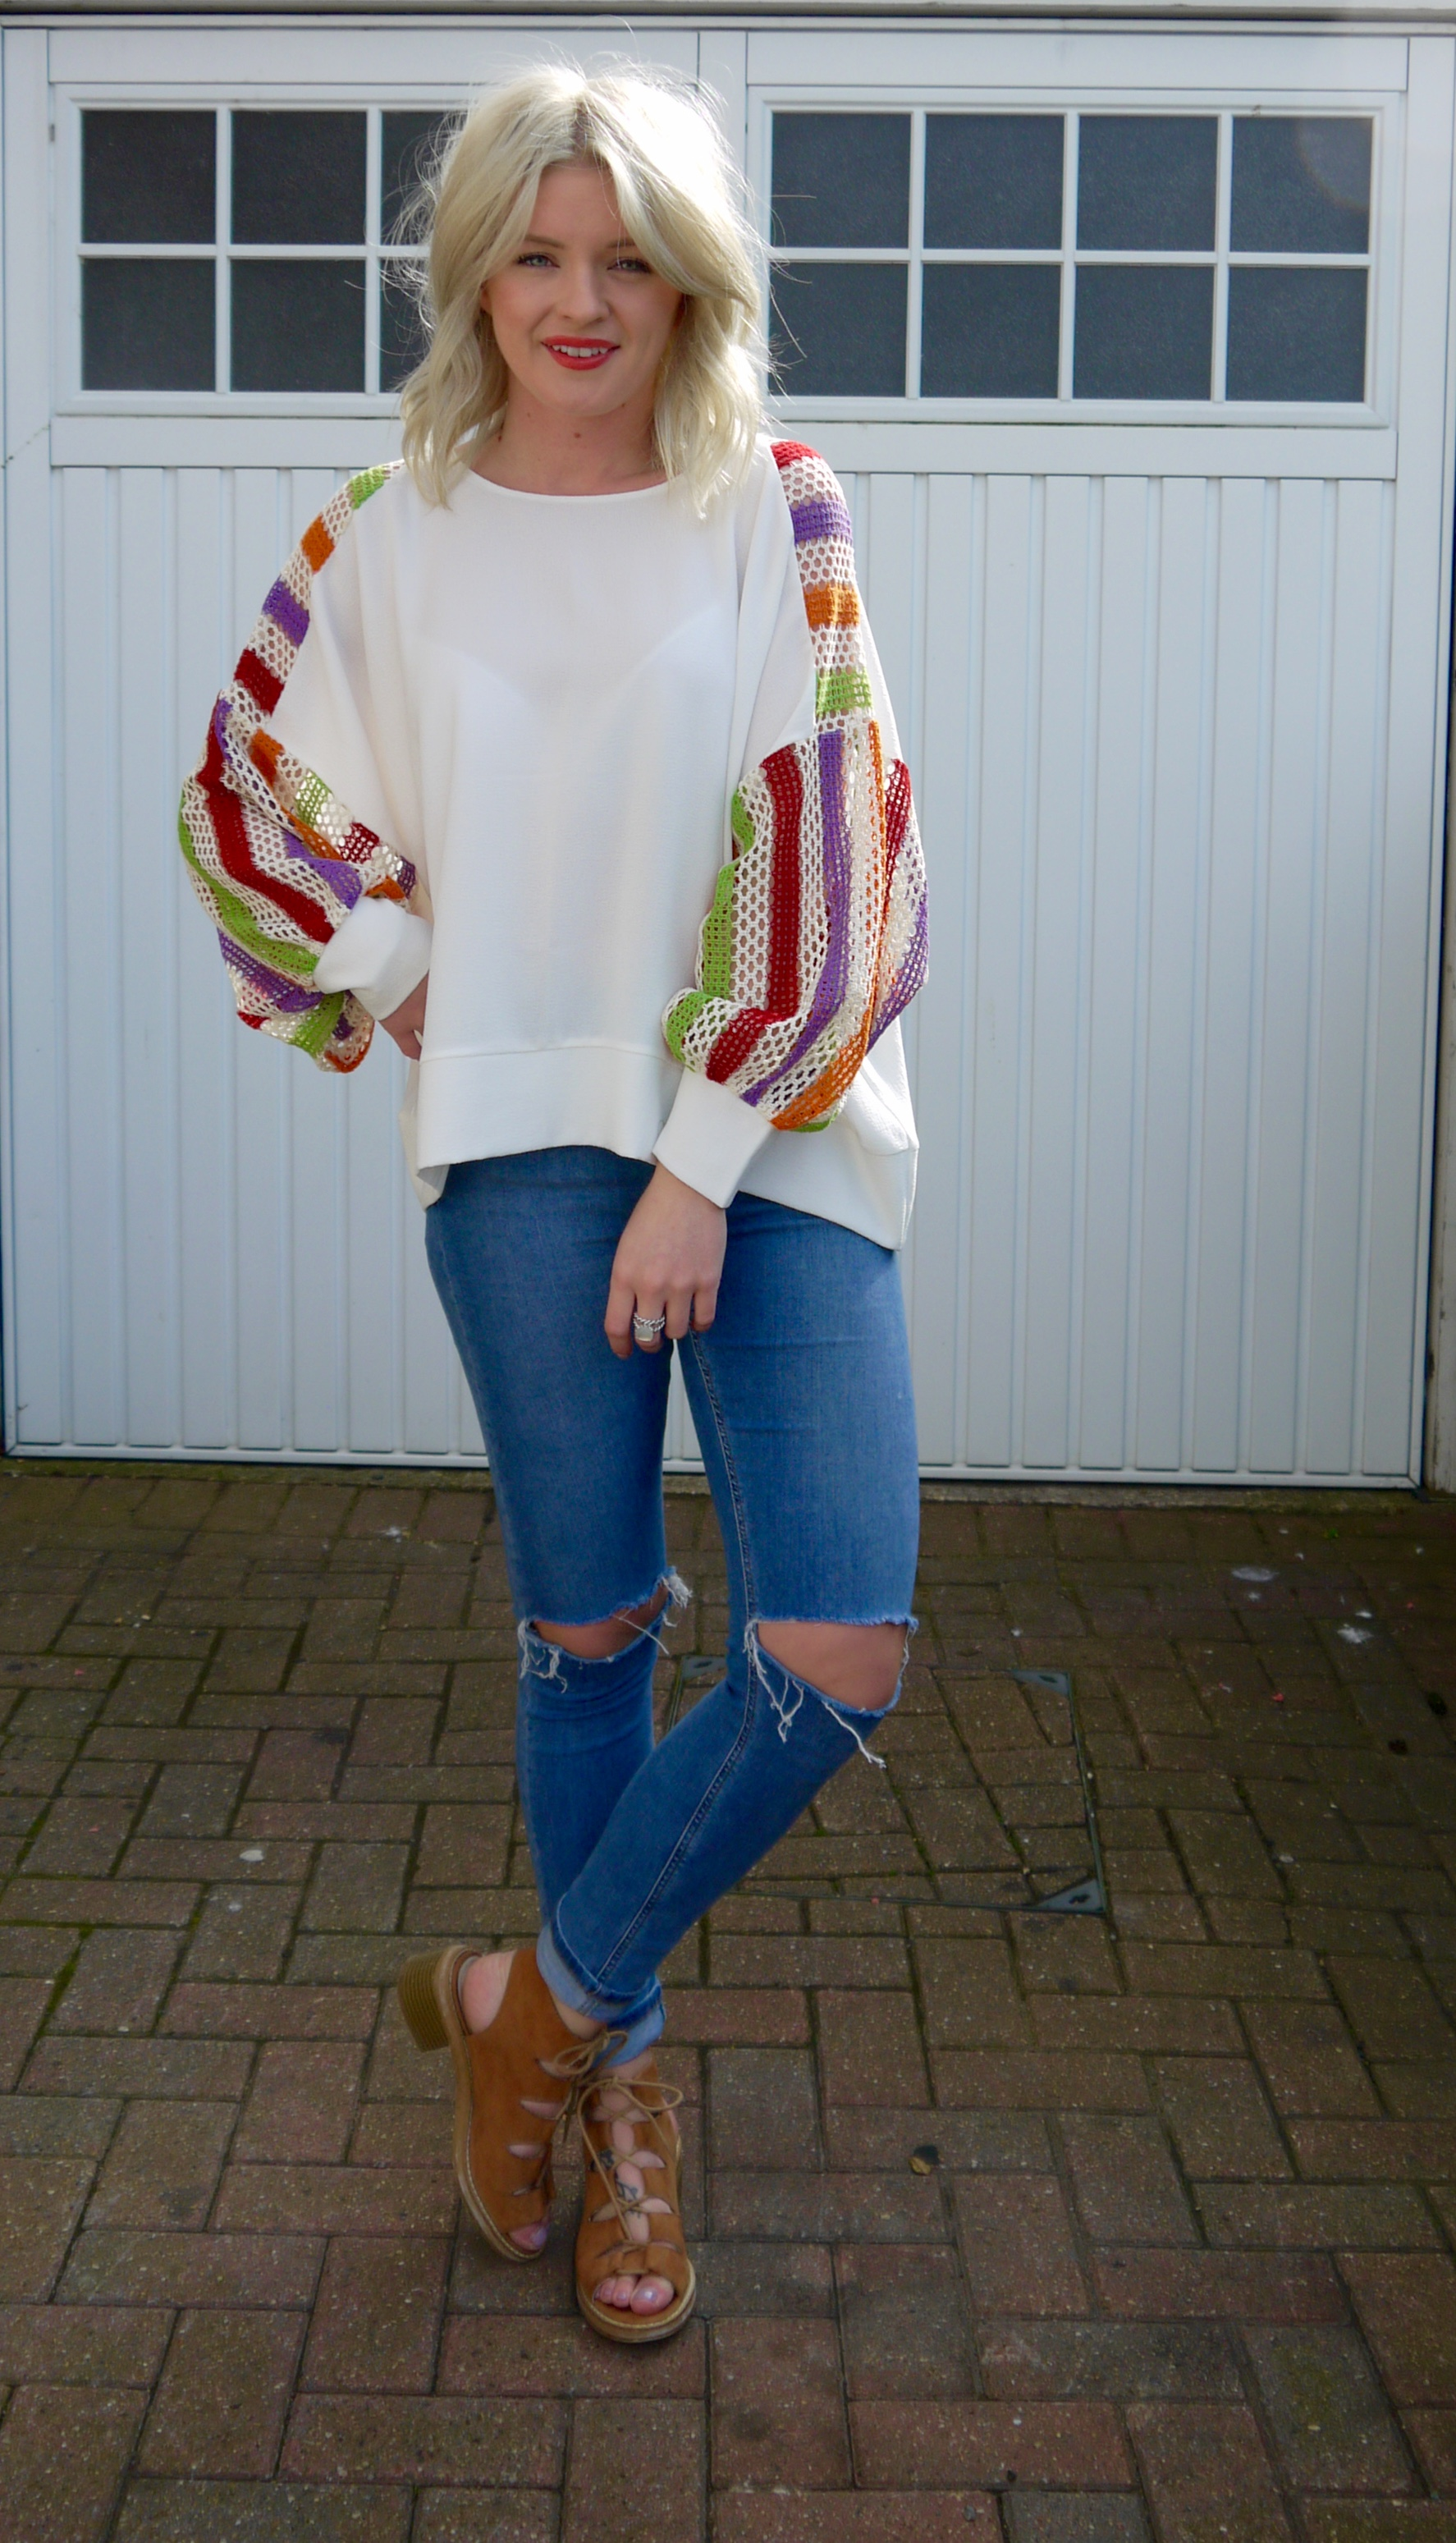 minkie london, Crochet Oversized Top,  laura byrnes, lauras little locket, blue ripped jeans, spring fashion, tan sandals